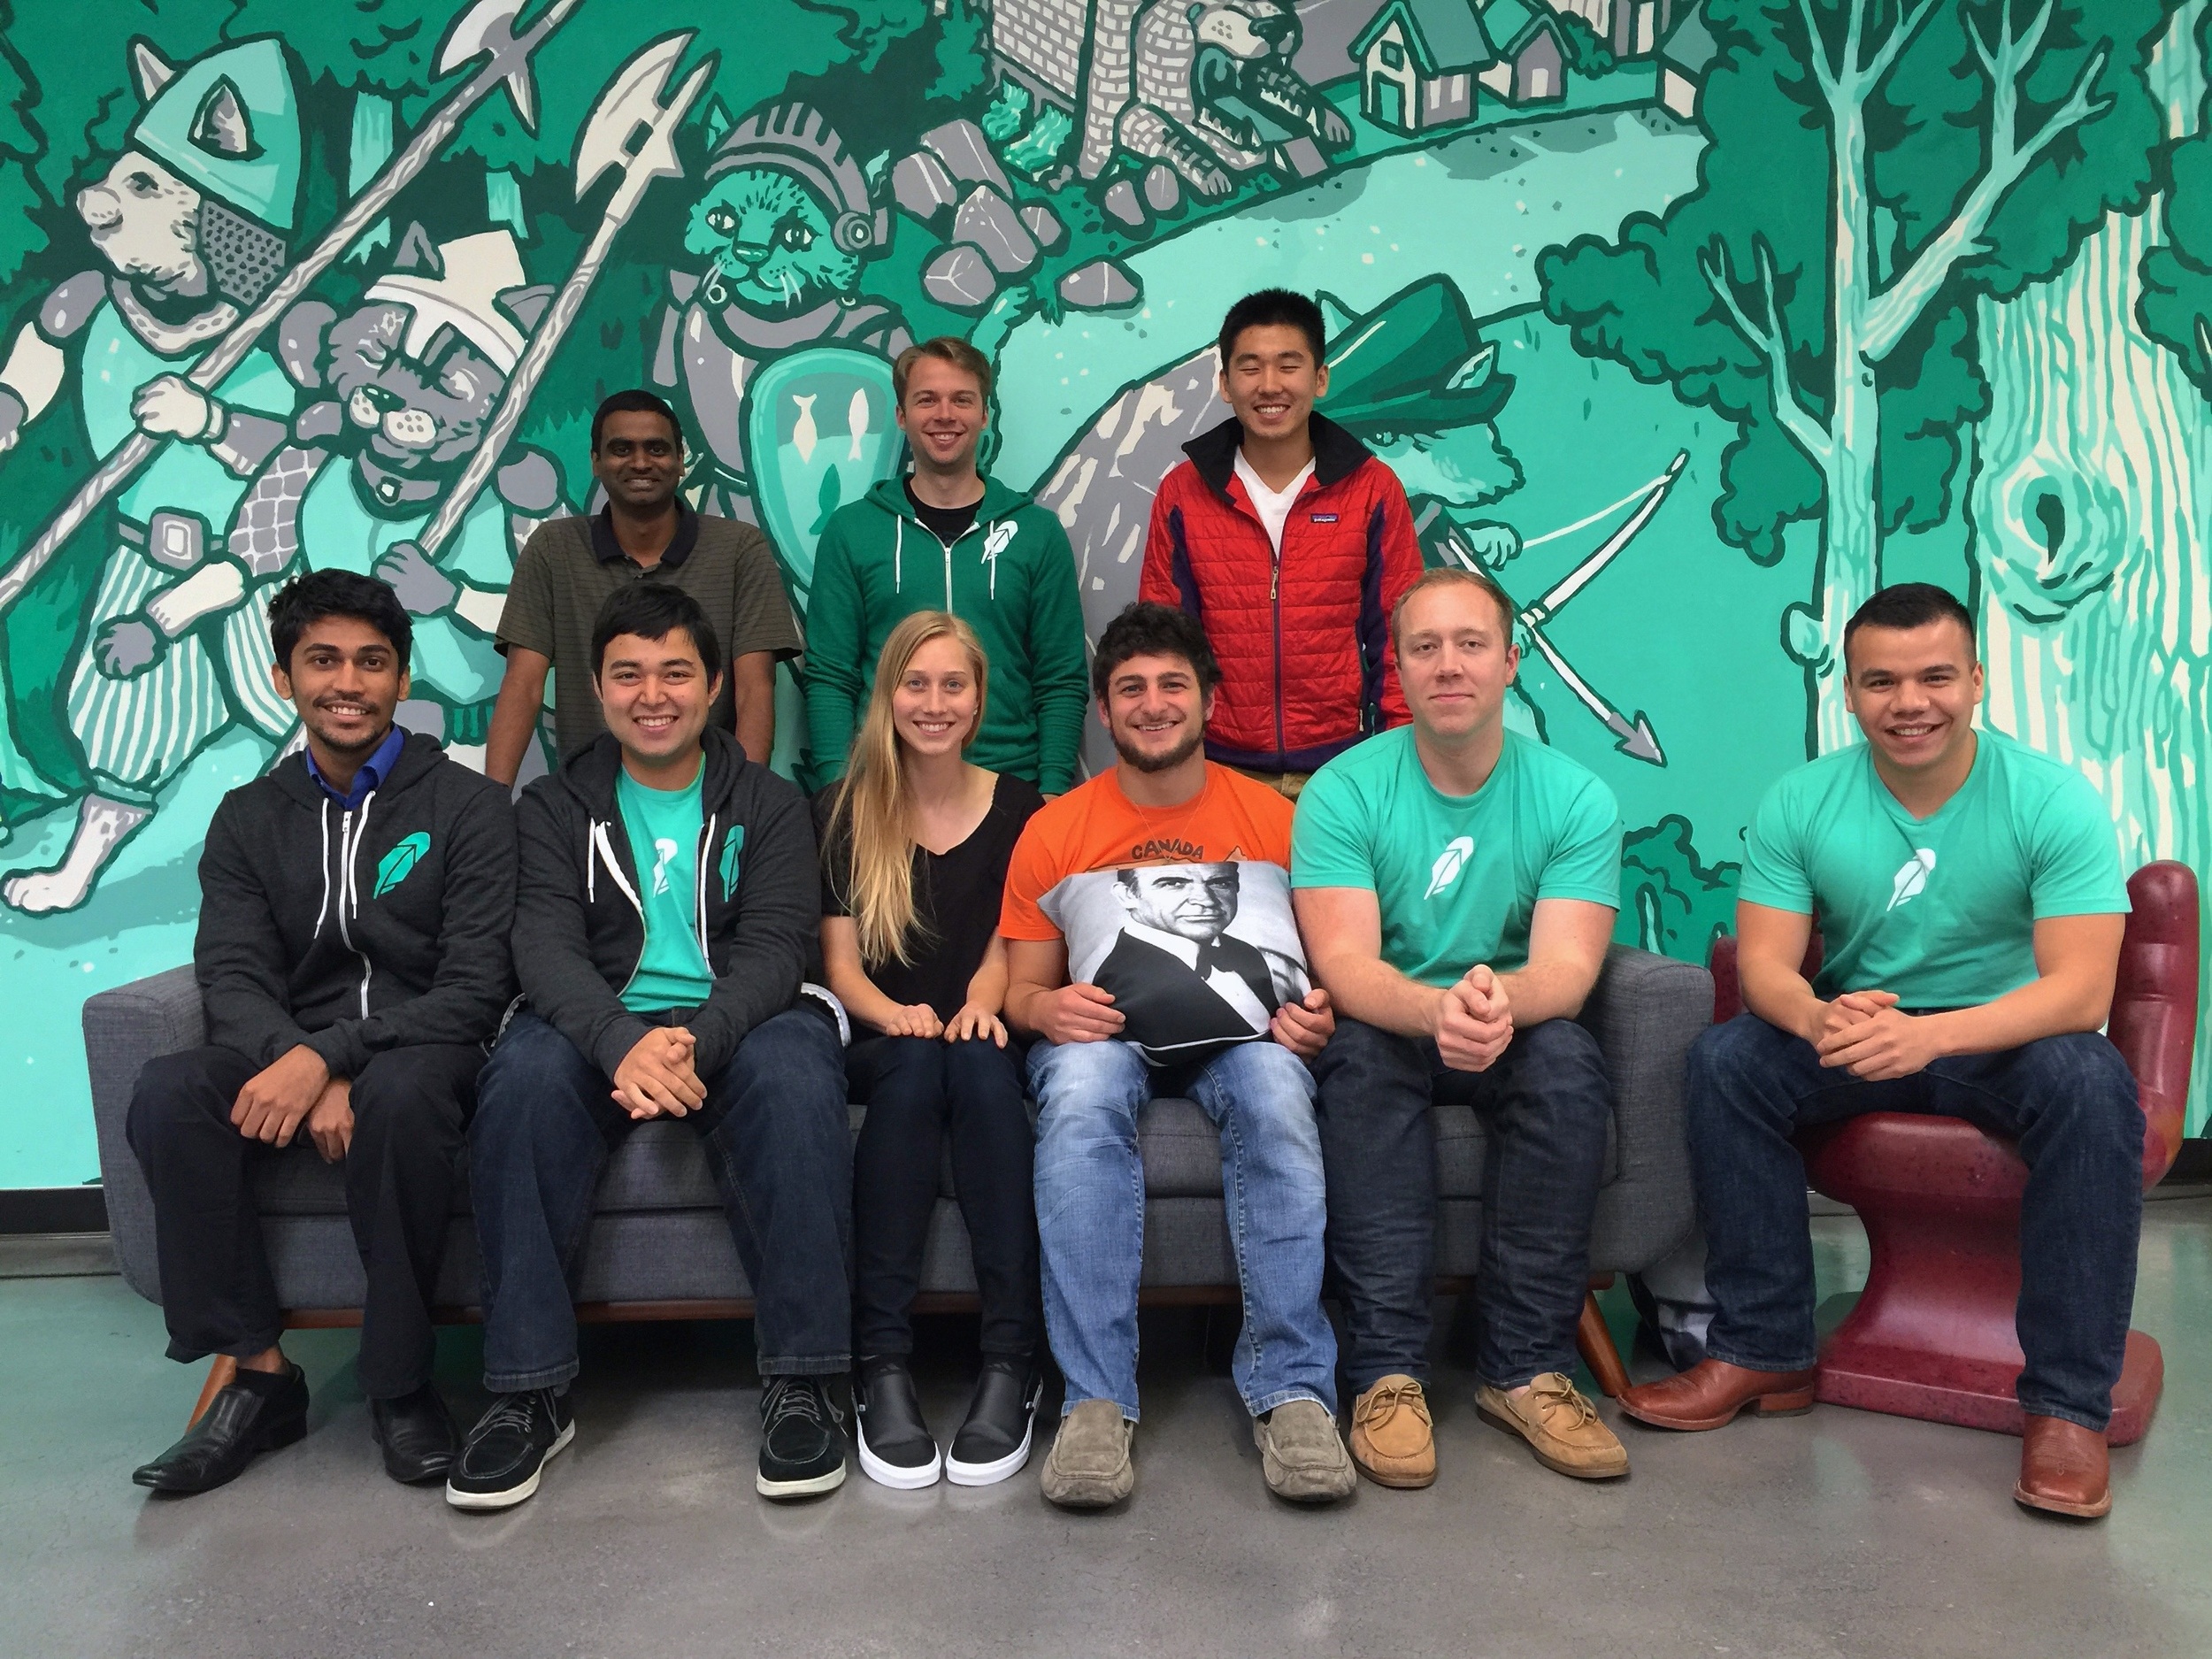 (Left to Right) Back row: Aravind, Dan, & Hongxia. Front row: Arpan, Curran, Hannah, Chris, Scott, & Michael. Not pictured: Olympia & Ask Solem.